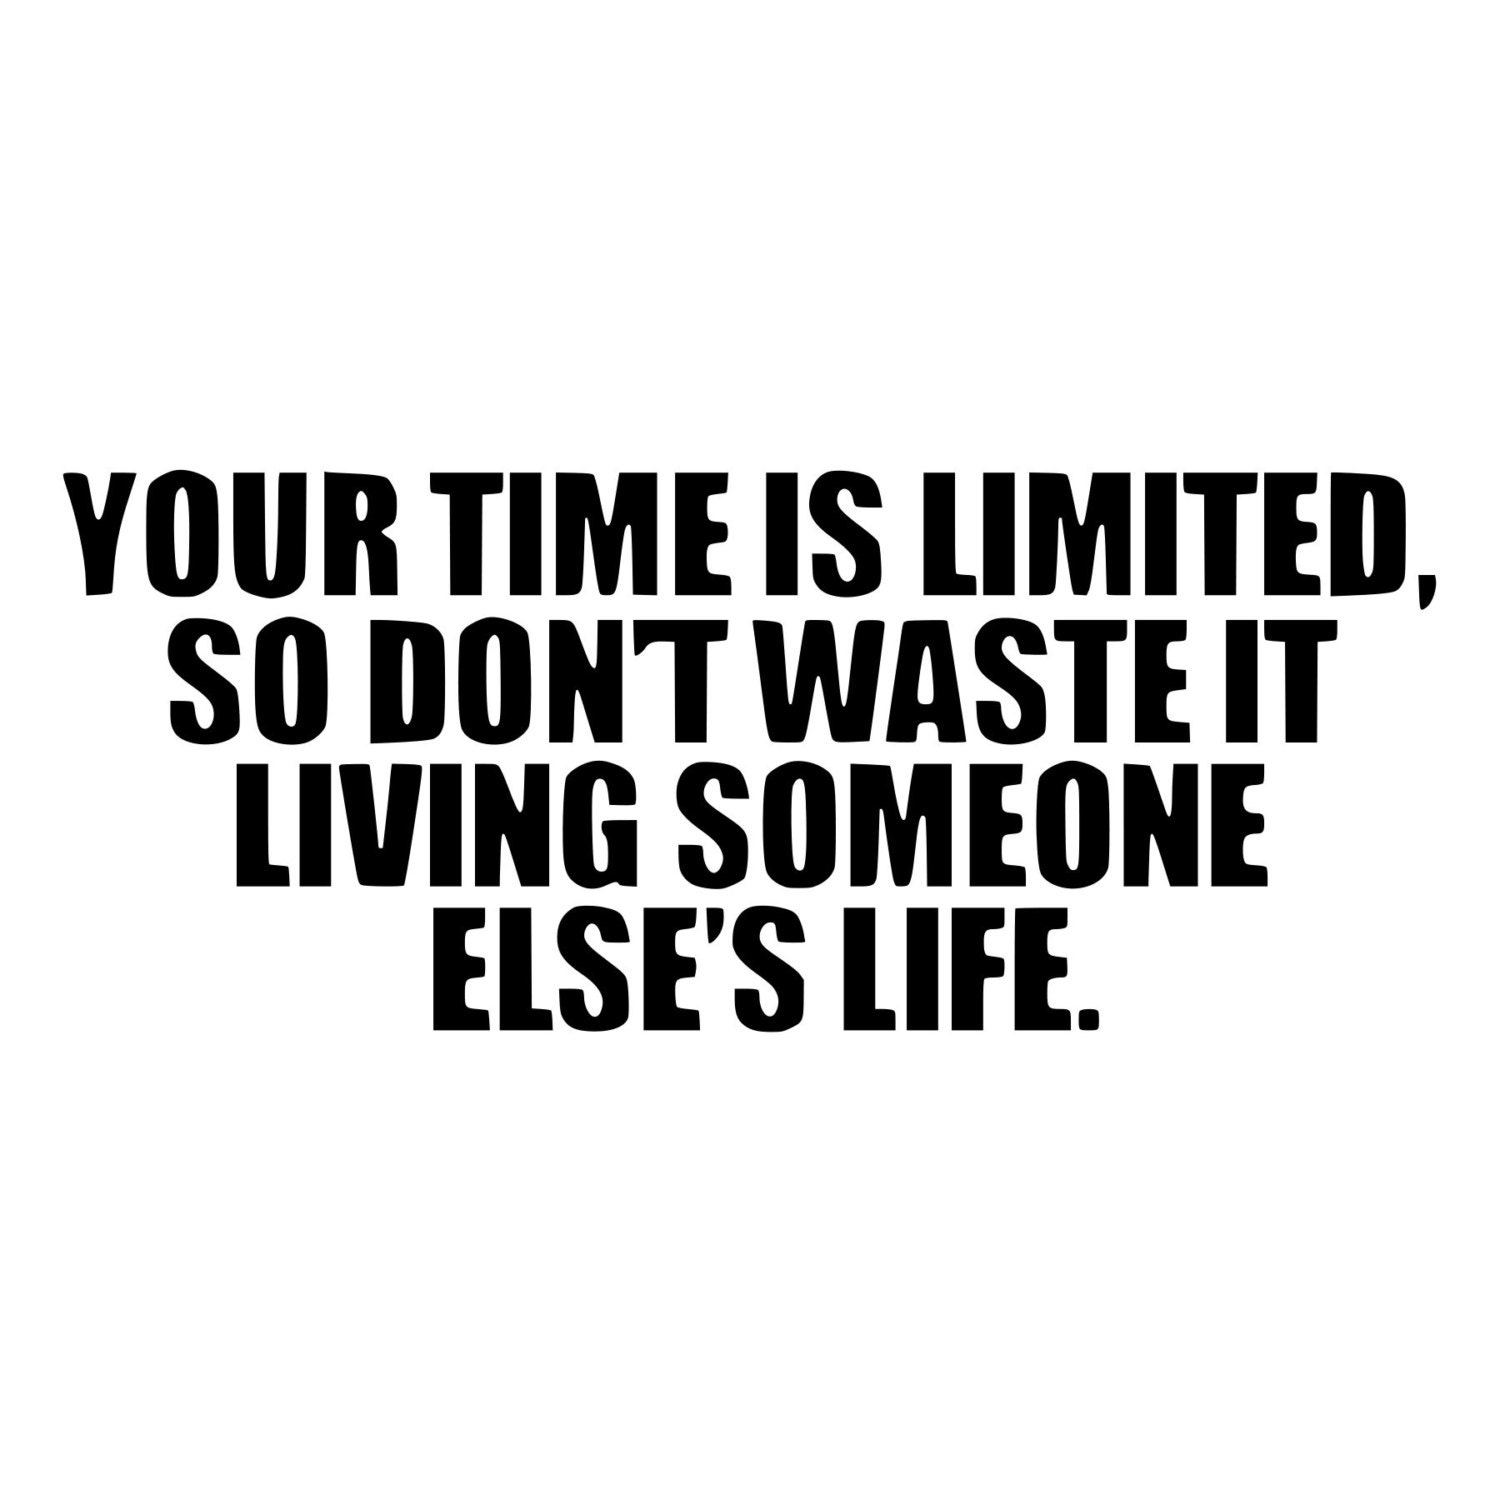 Your Time is Limited so Don't Waste it Living Someone Else's Life by BeeMountainGraphics